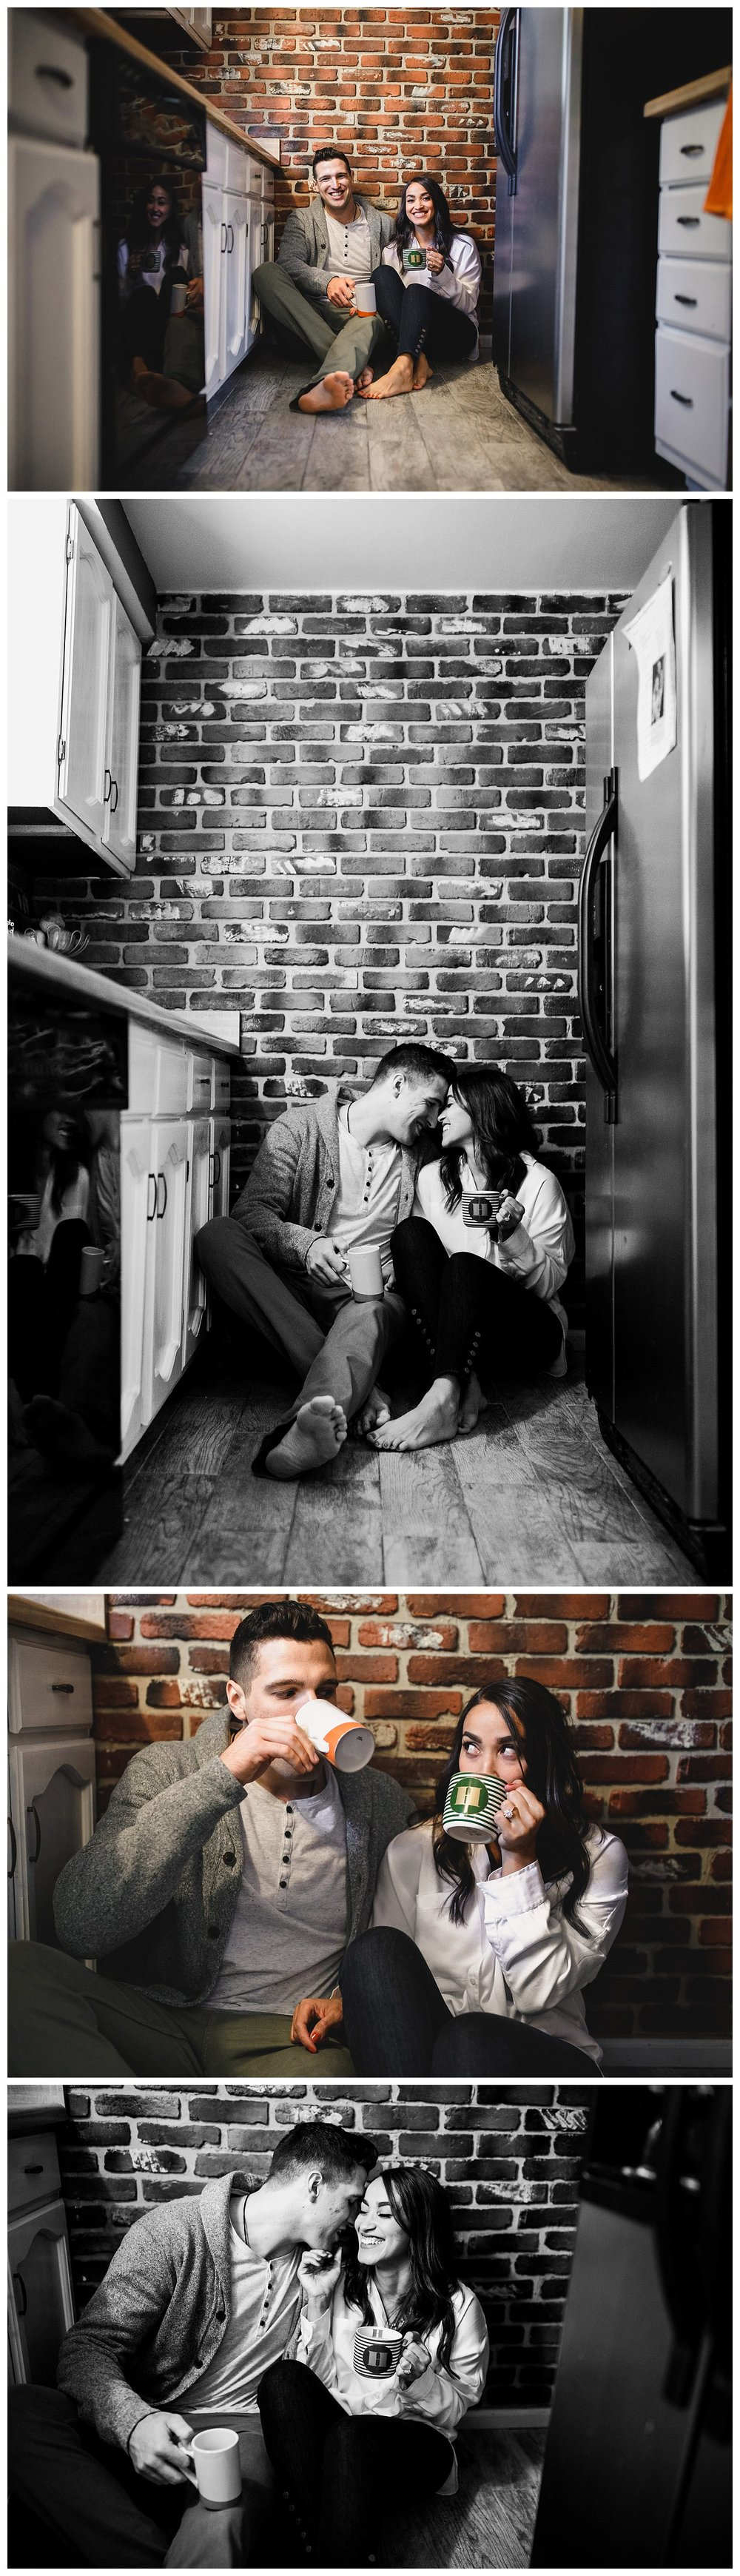 Kansas_City_Wedding_Photographer_Engagement_Kelsey_Diane_Photography_Midwest_Traveling_In_home_engagement_Session_Cassie_Austin_Parkville_Missouri_0872.jpg